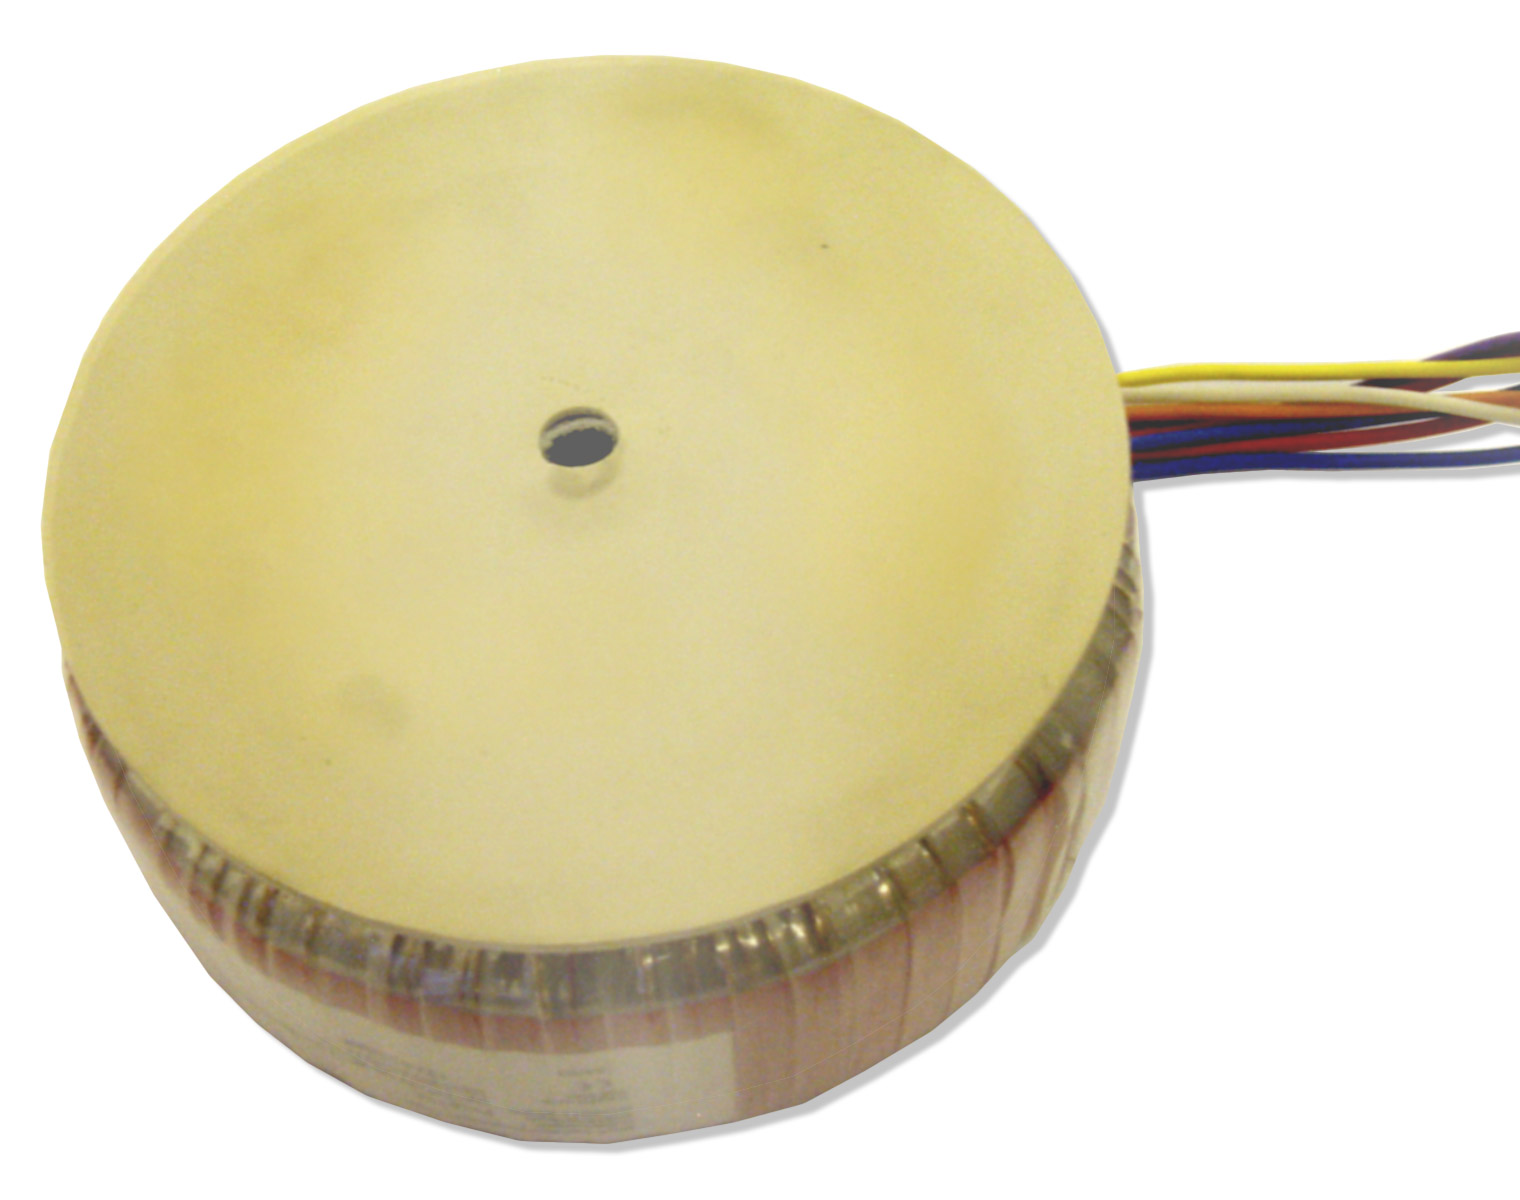 Centre potted toroidal transformer with rubber pad